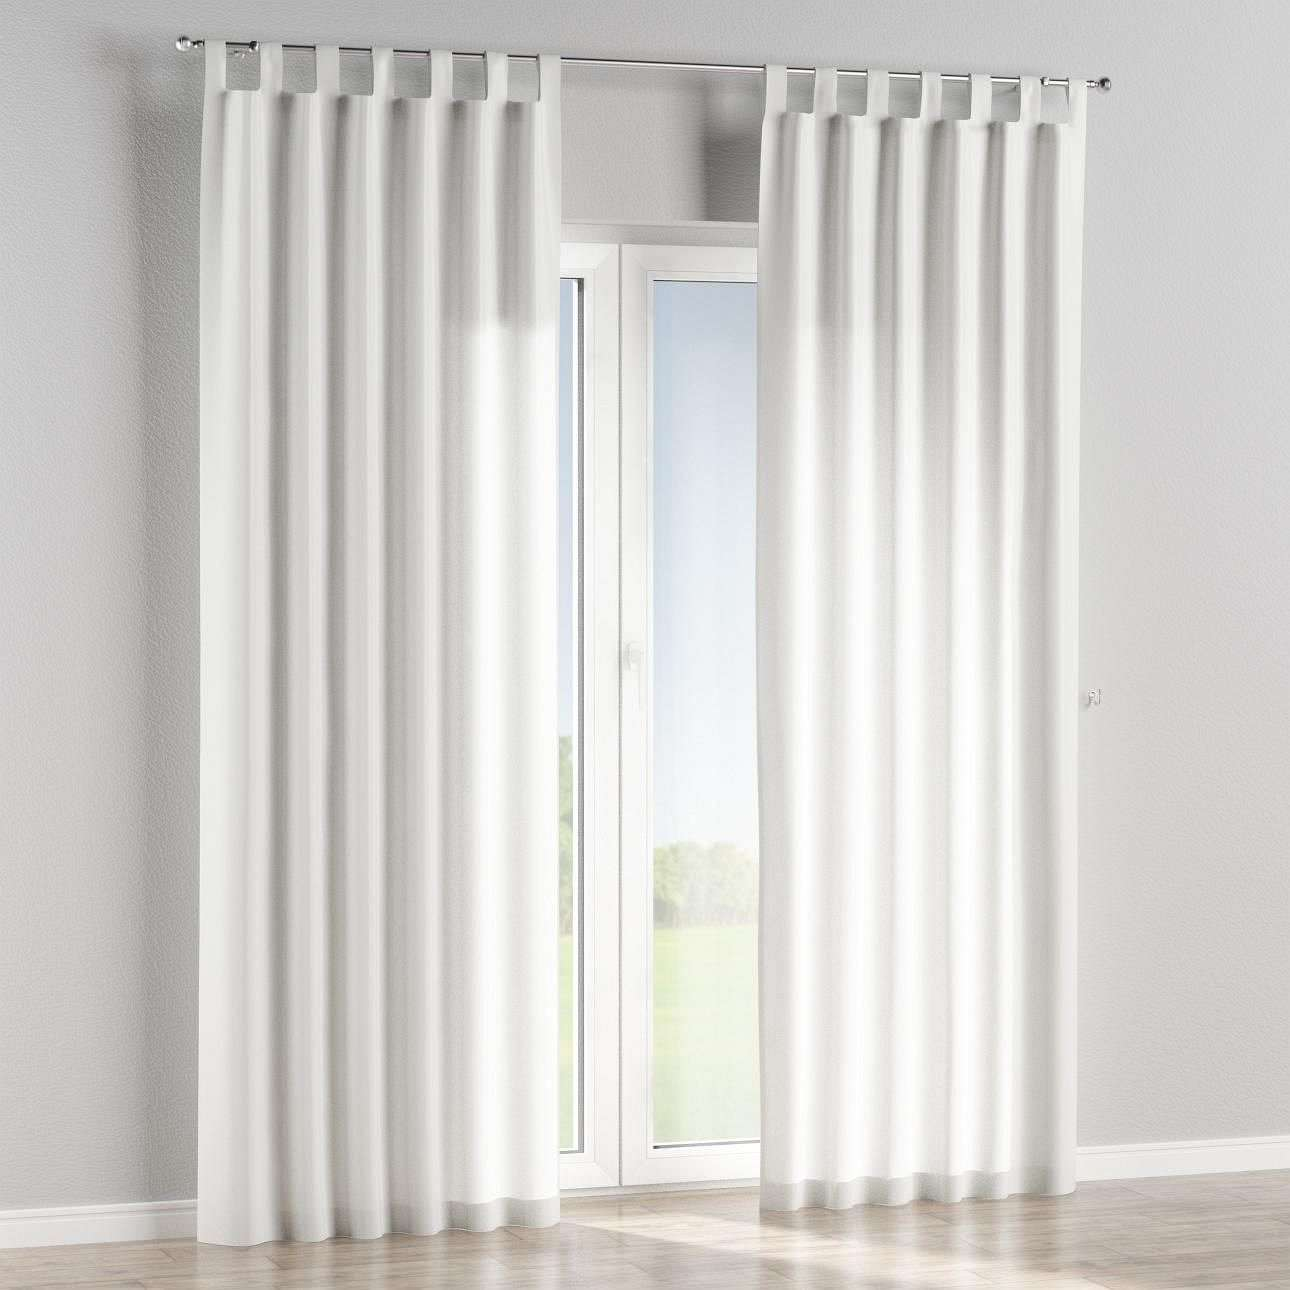 Tab top curtains in collection Rustica, fabric: 138-25